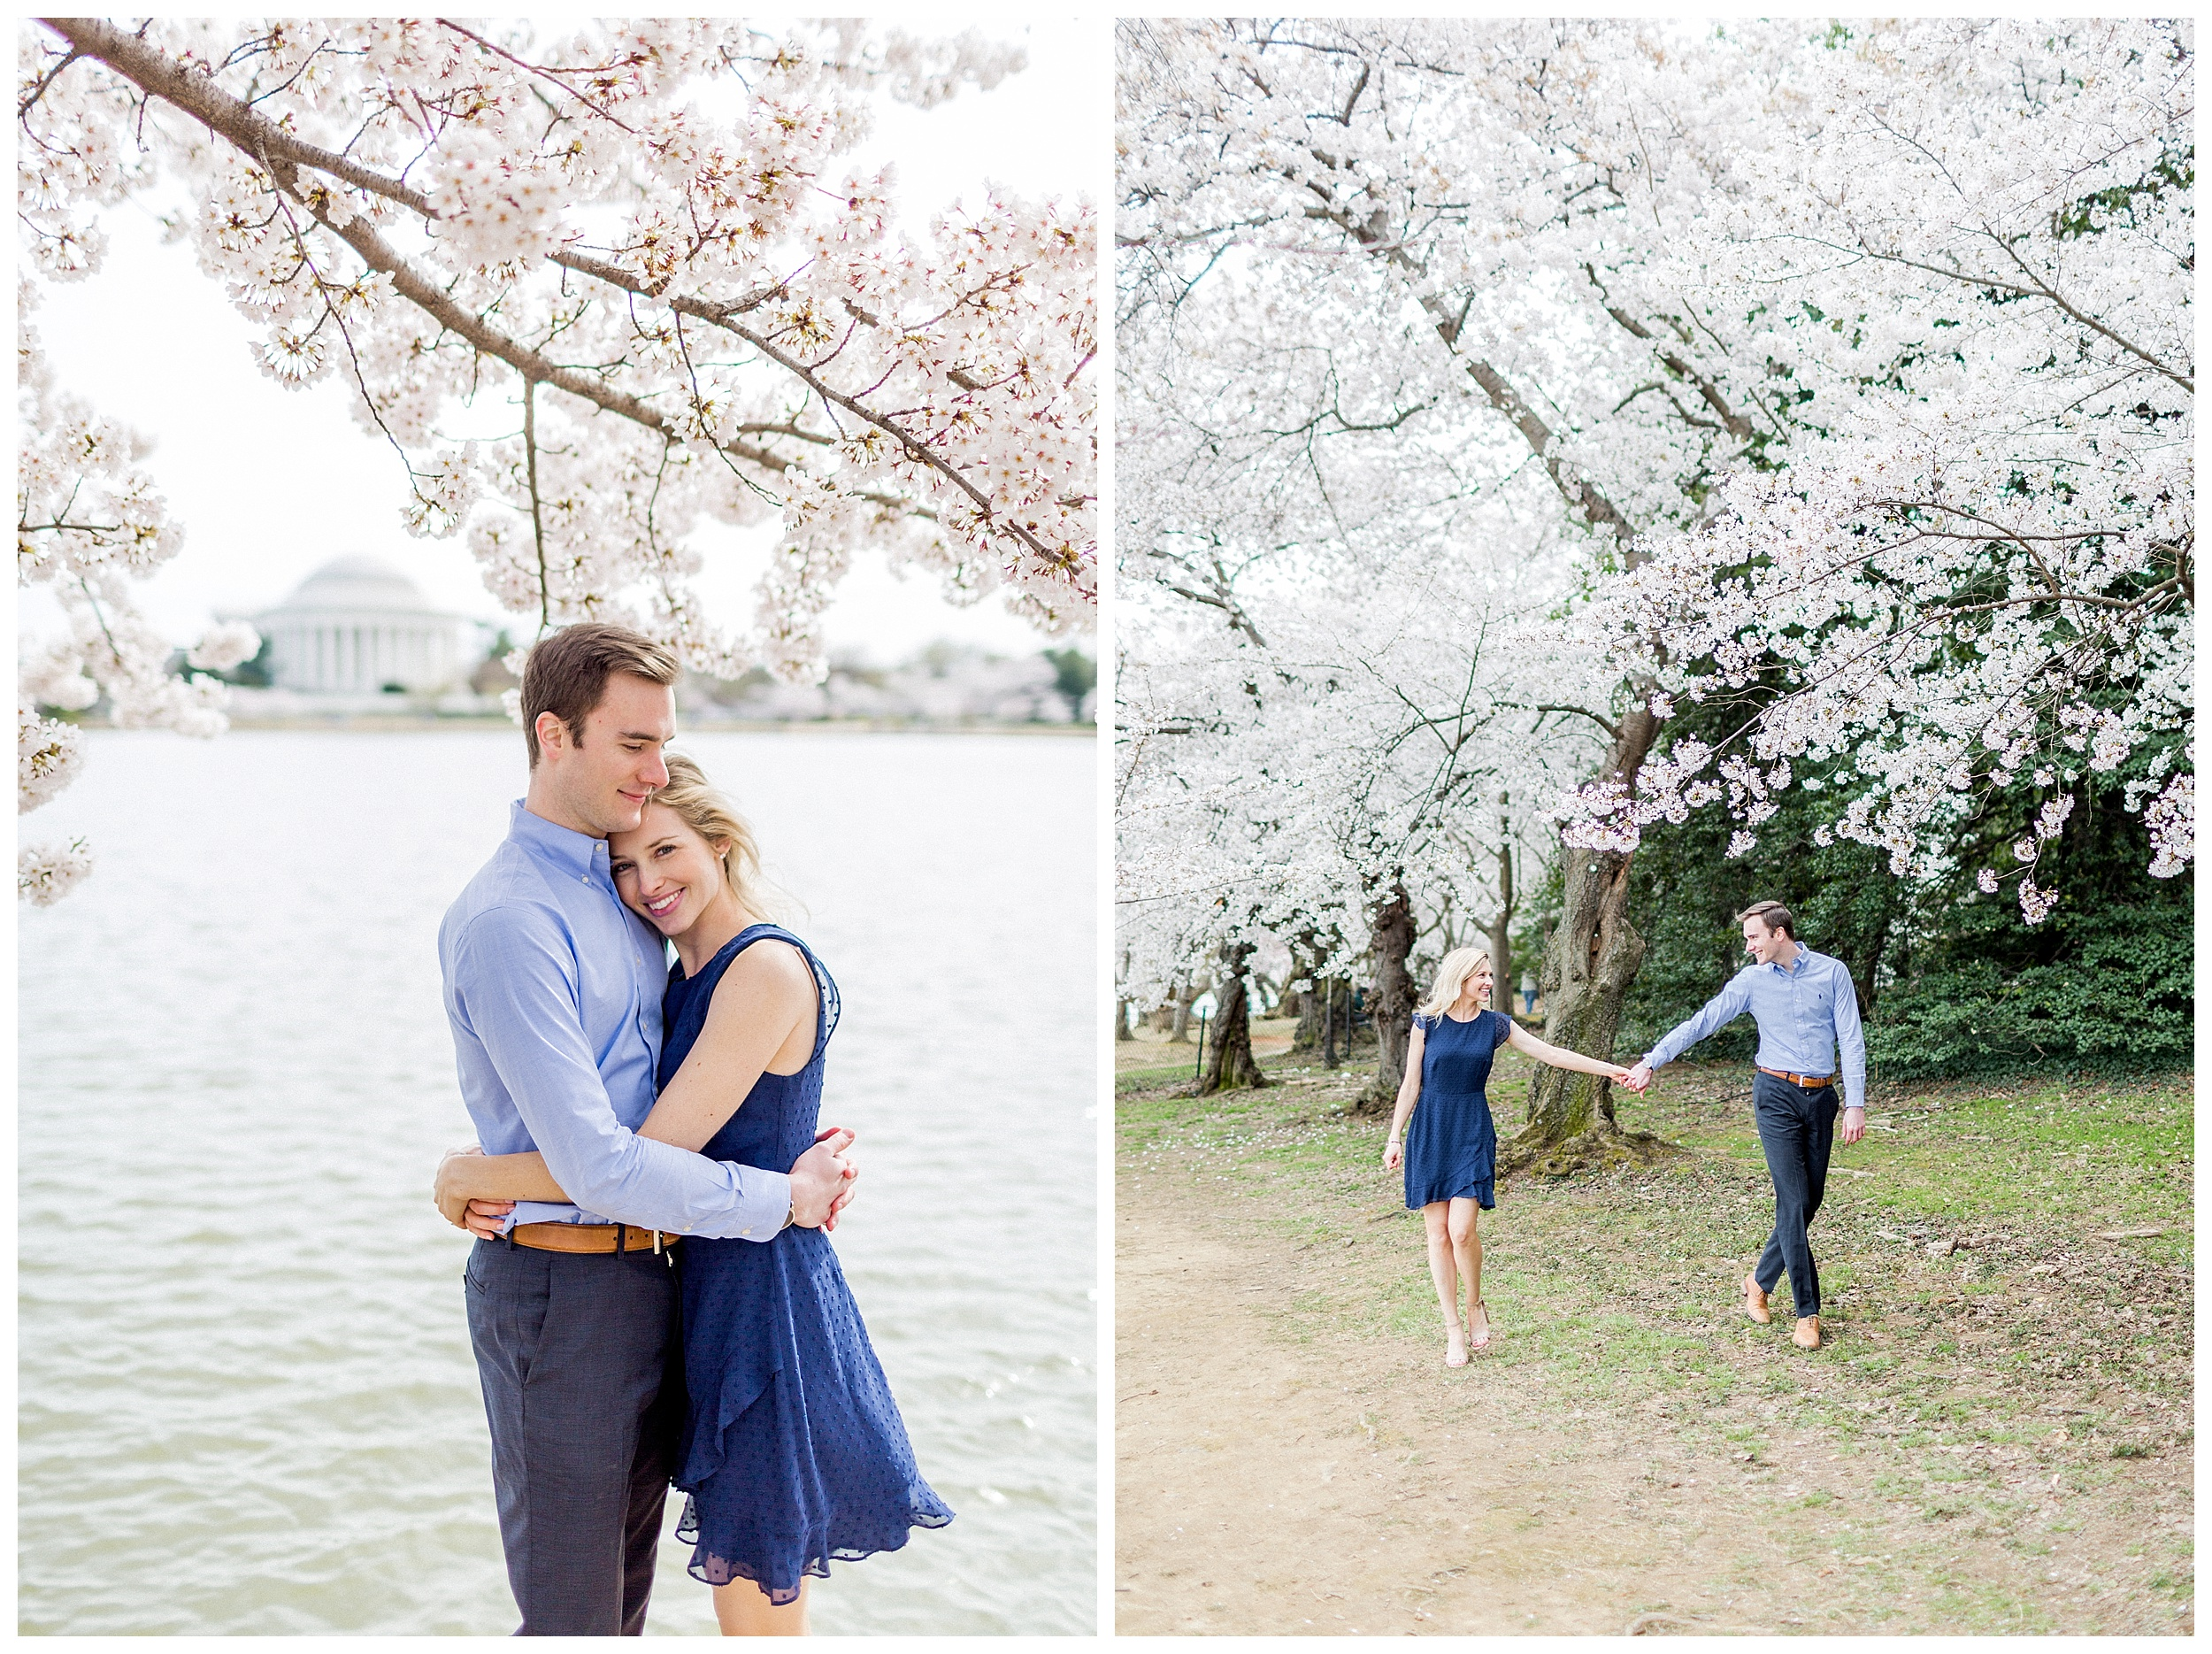 District of Columbia Cherry Blossom Engagement Session_0020.jpg